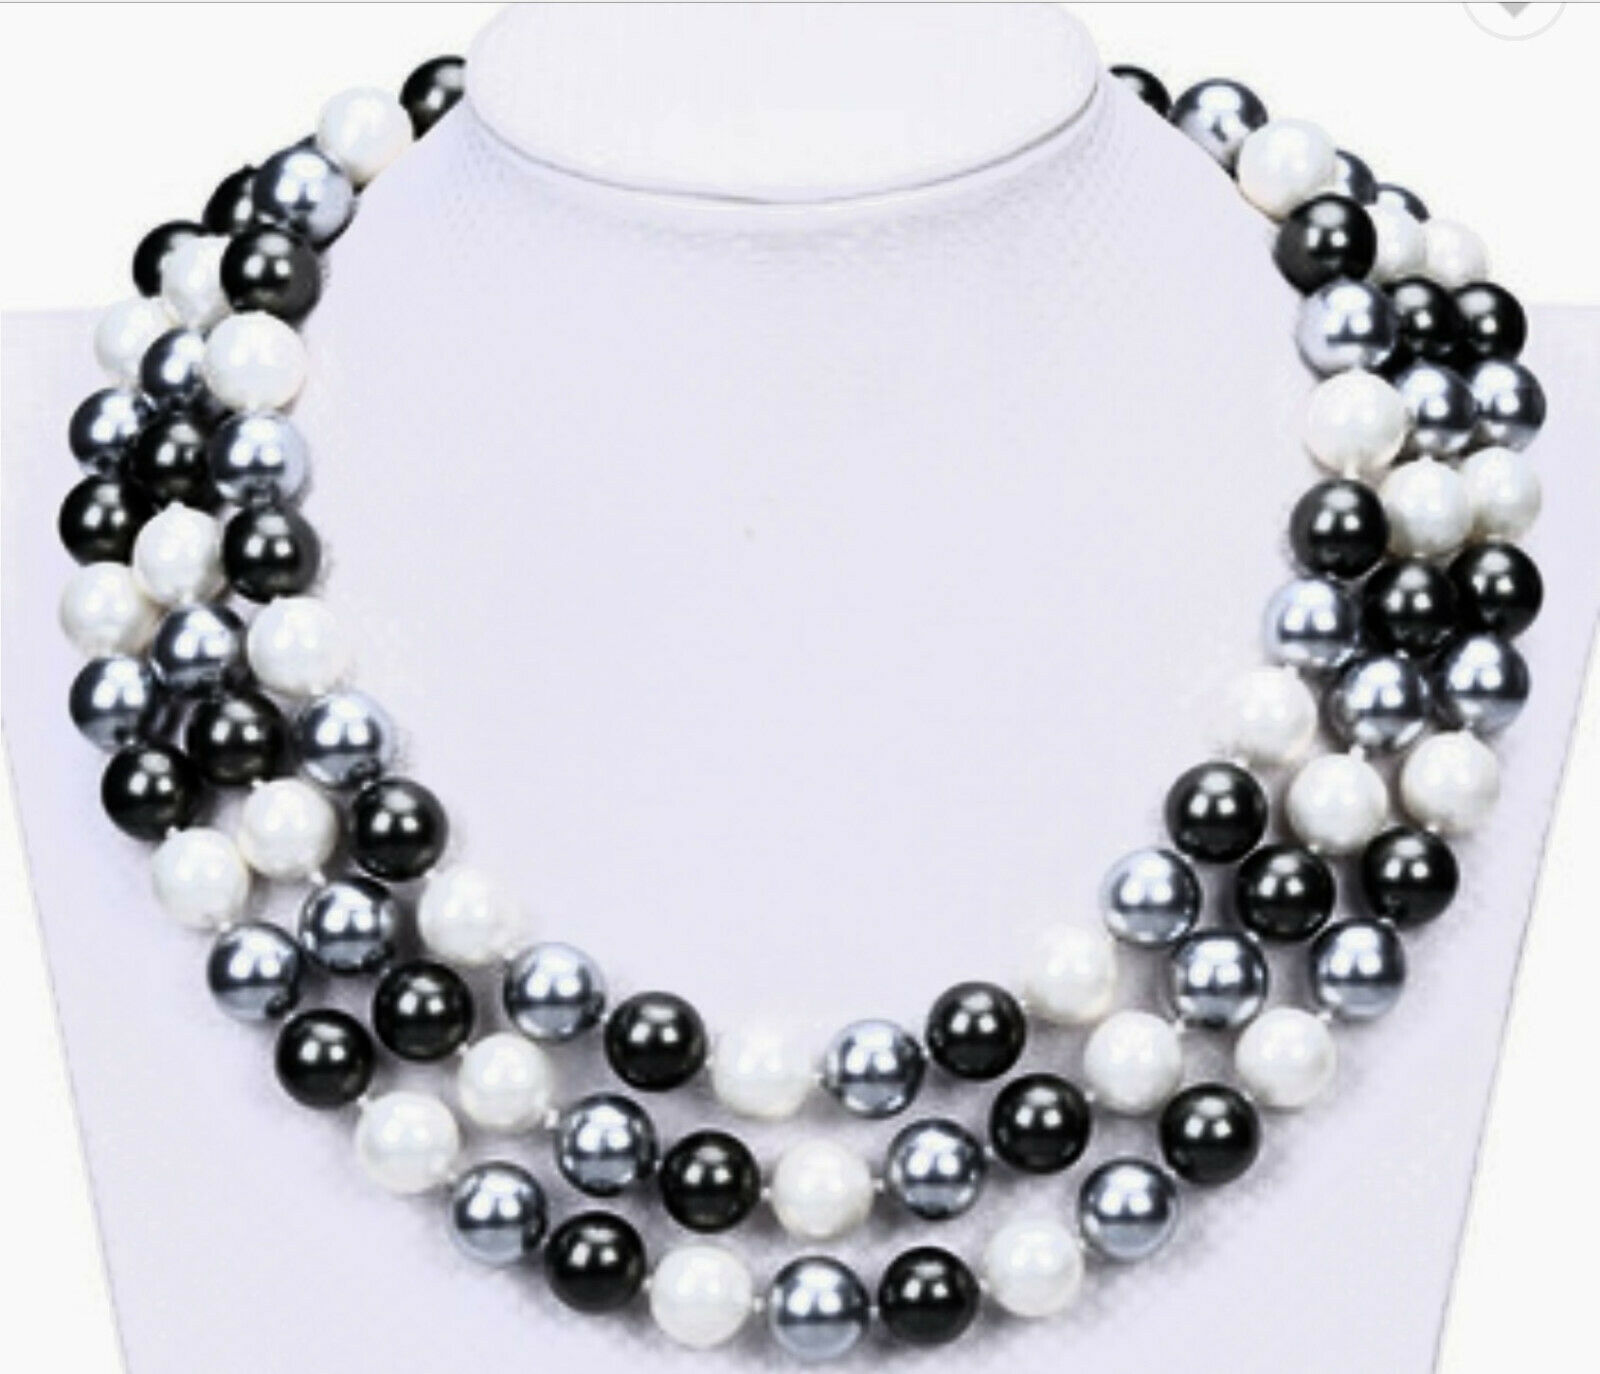 GENUINE HIGH END STATEMENT COSTUME SEA SHELL NECKLACE JEWELRY NEW